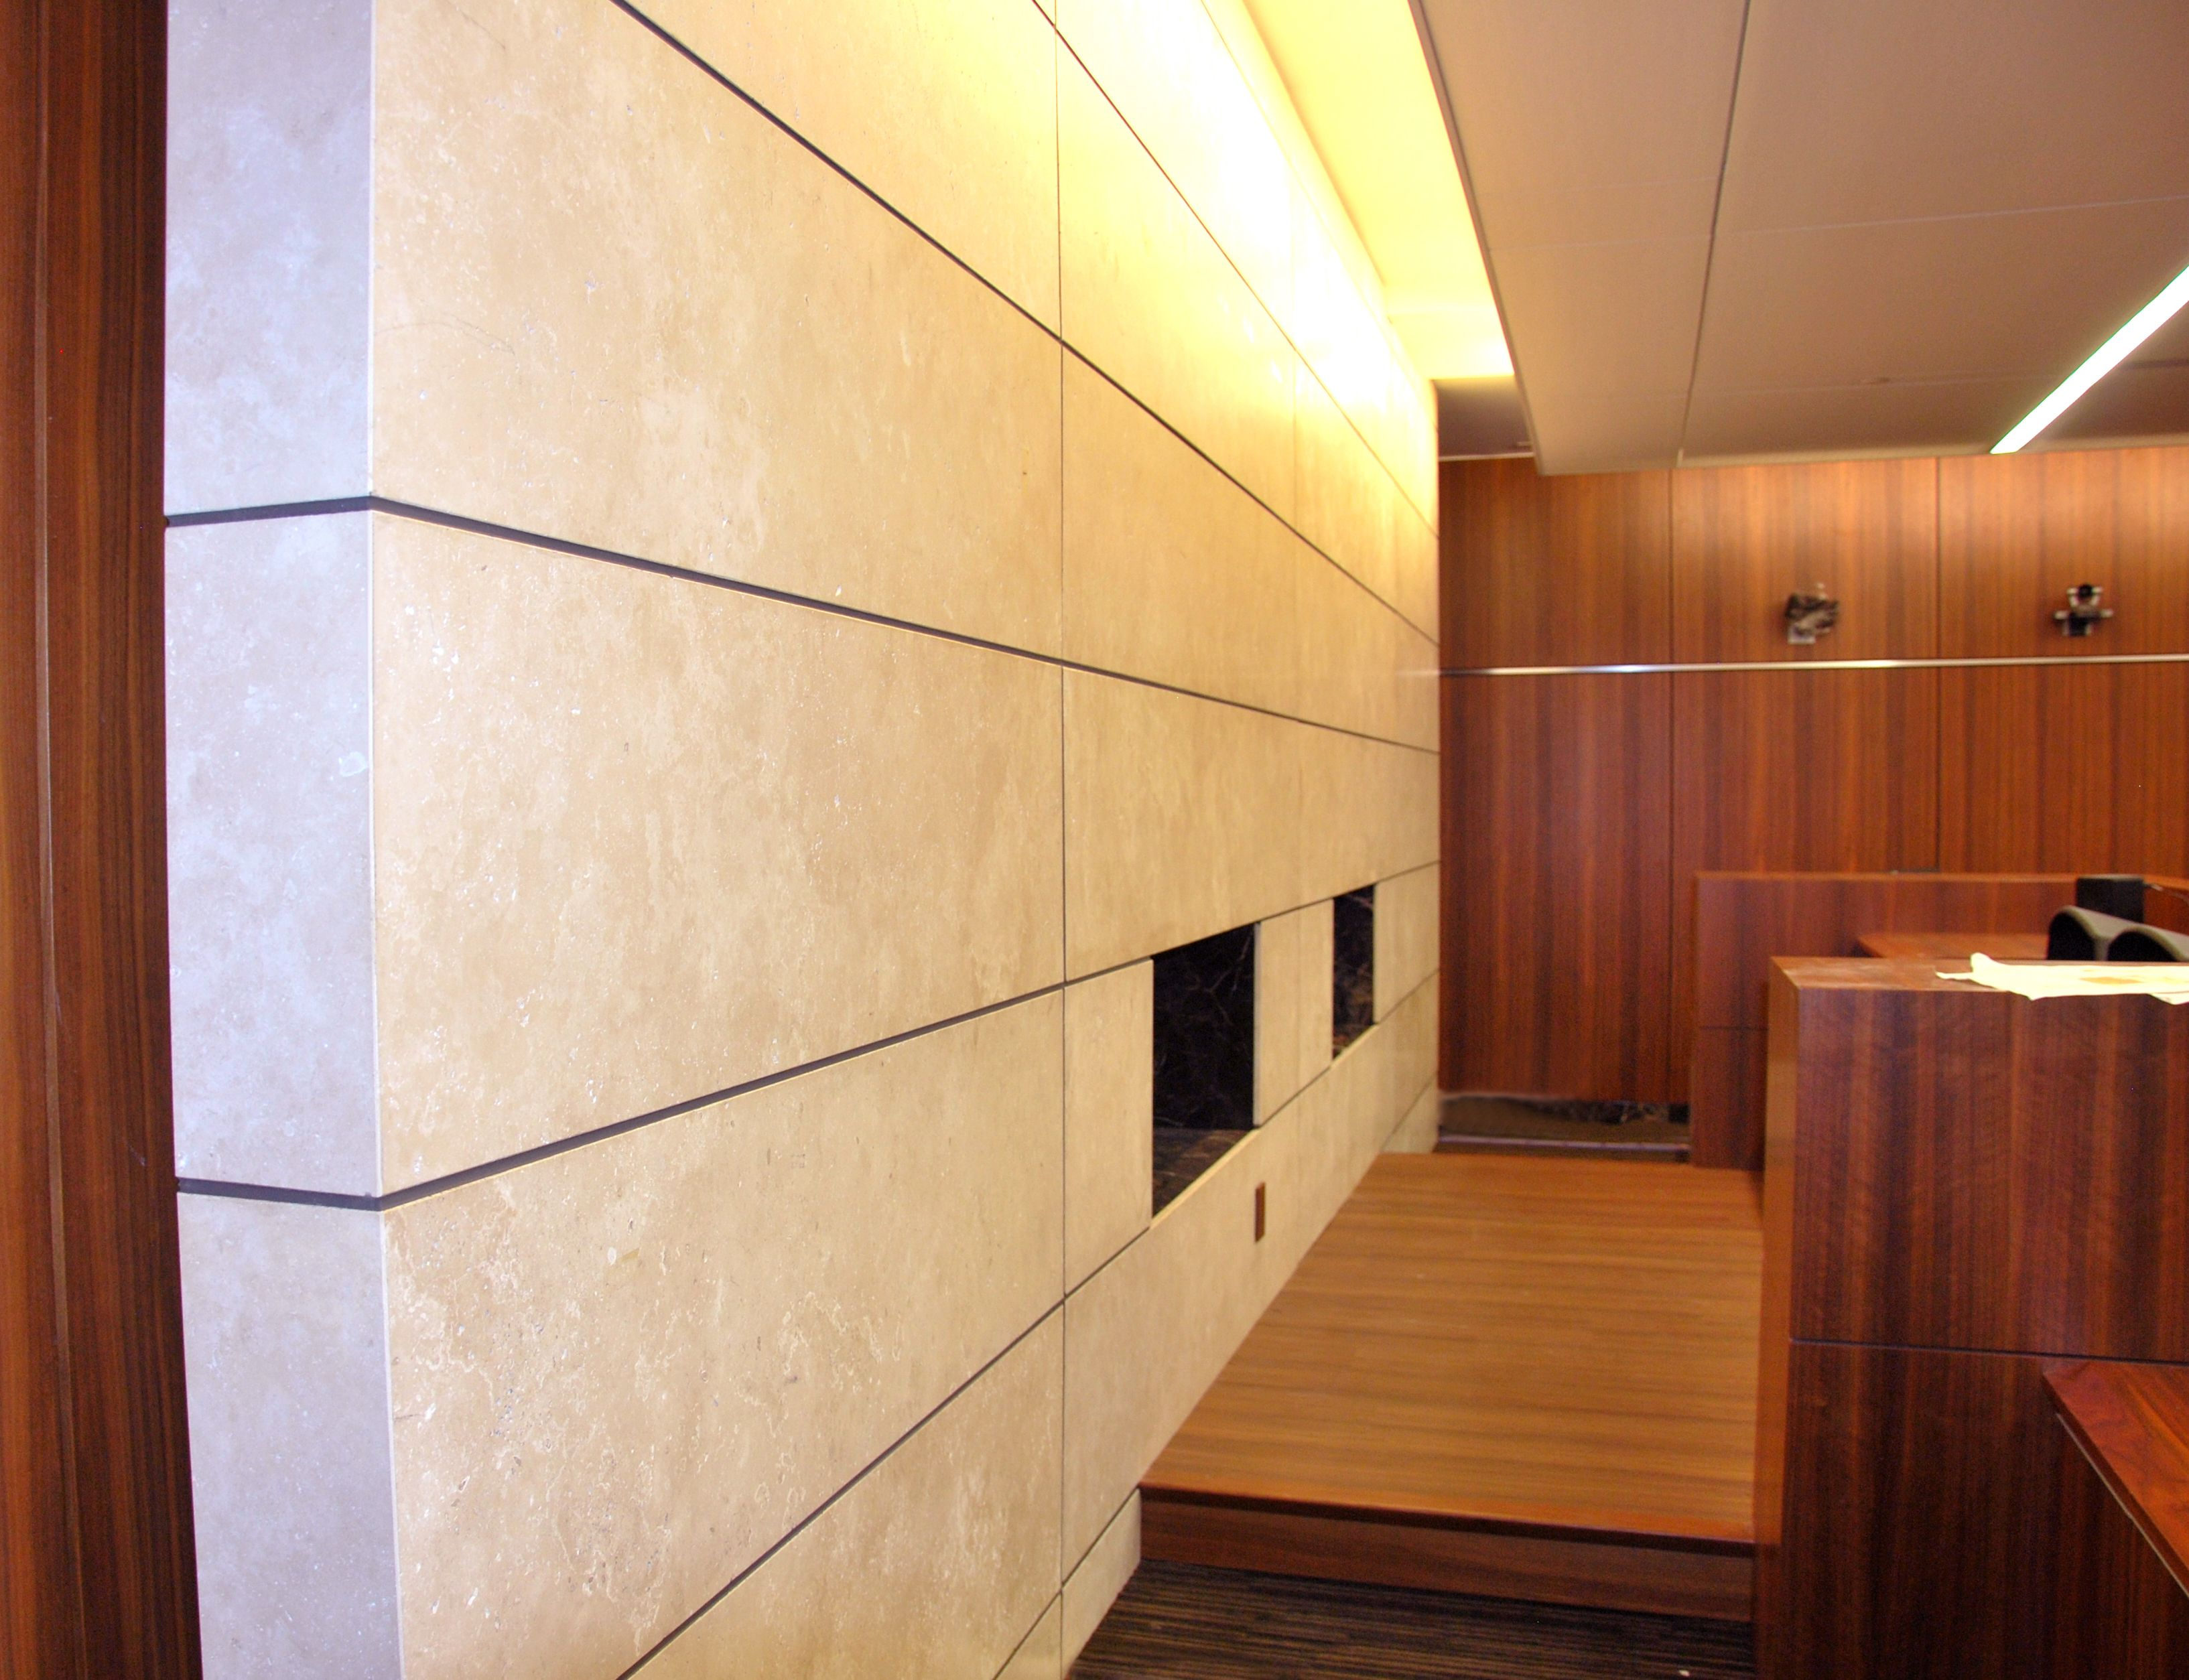 Trimstone Lightweight Stone Systems - Interior Wall Cladding ...